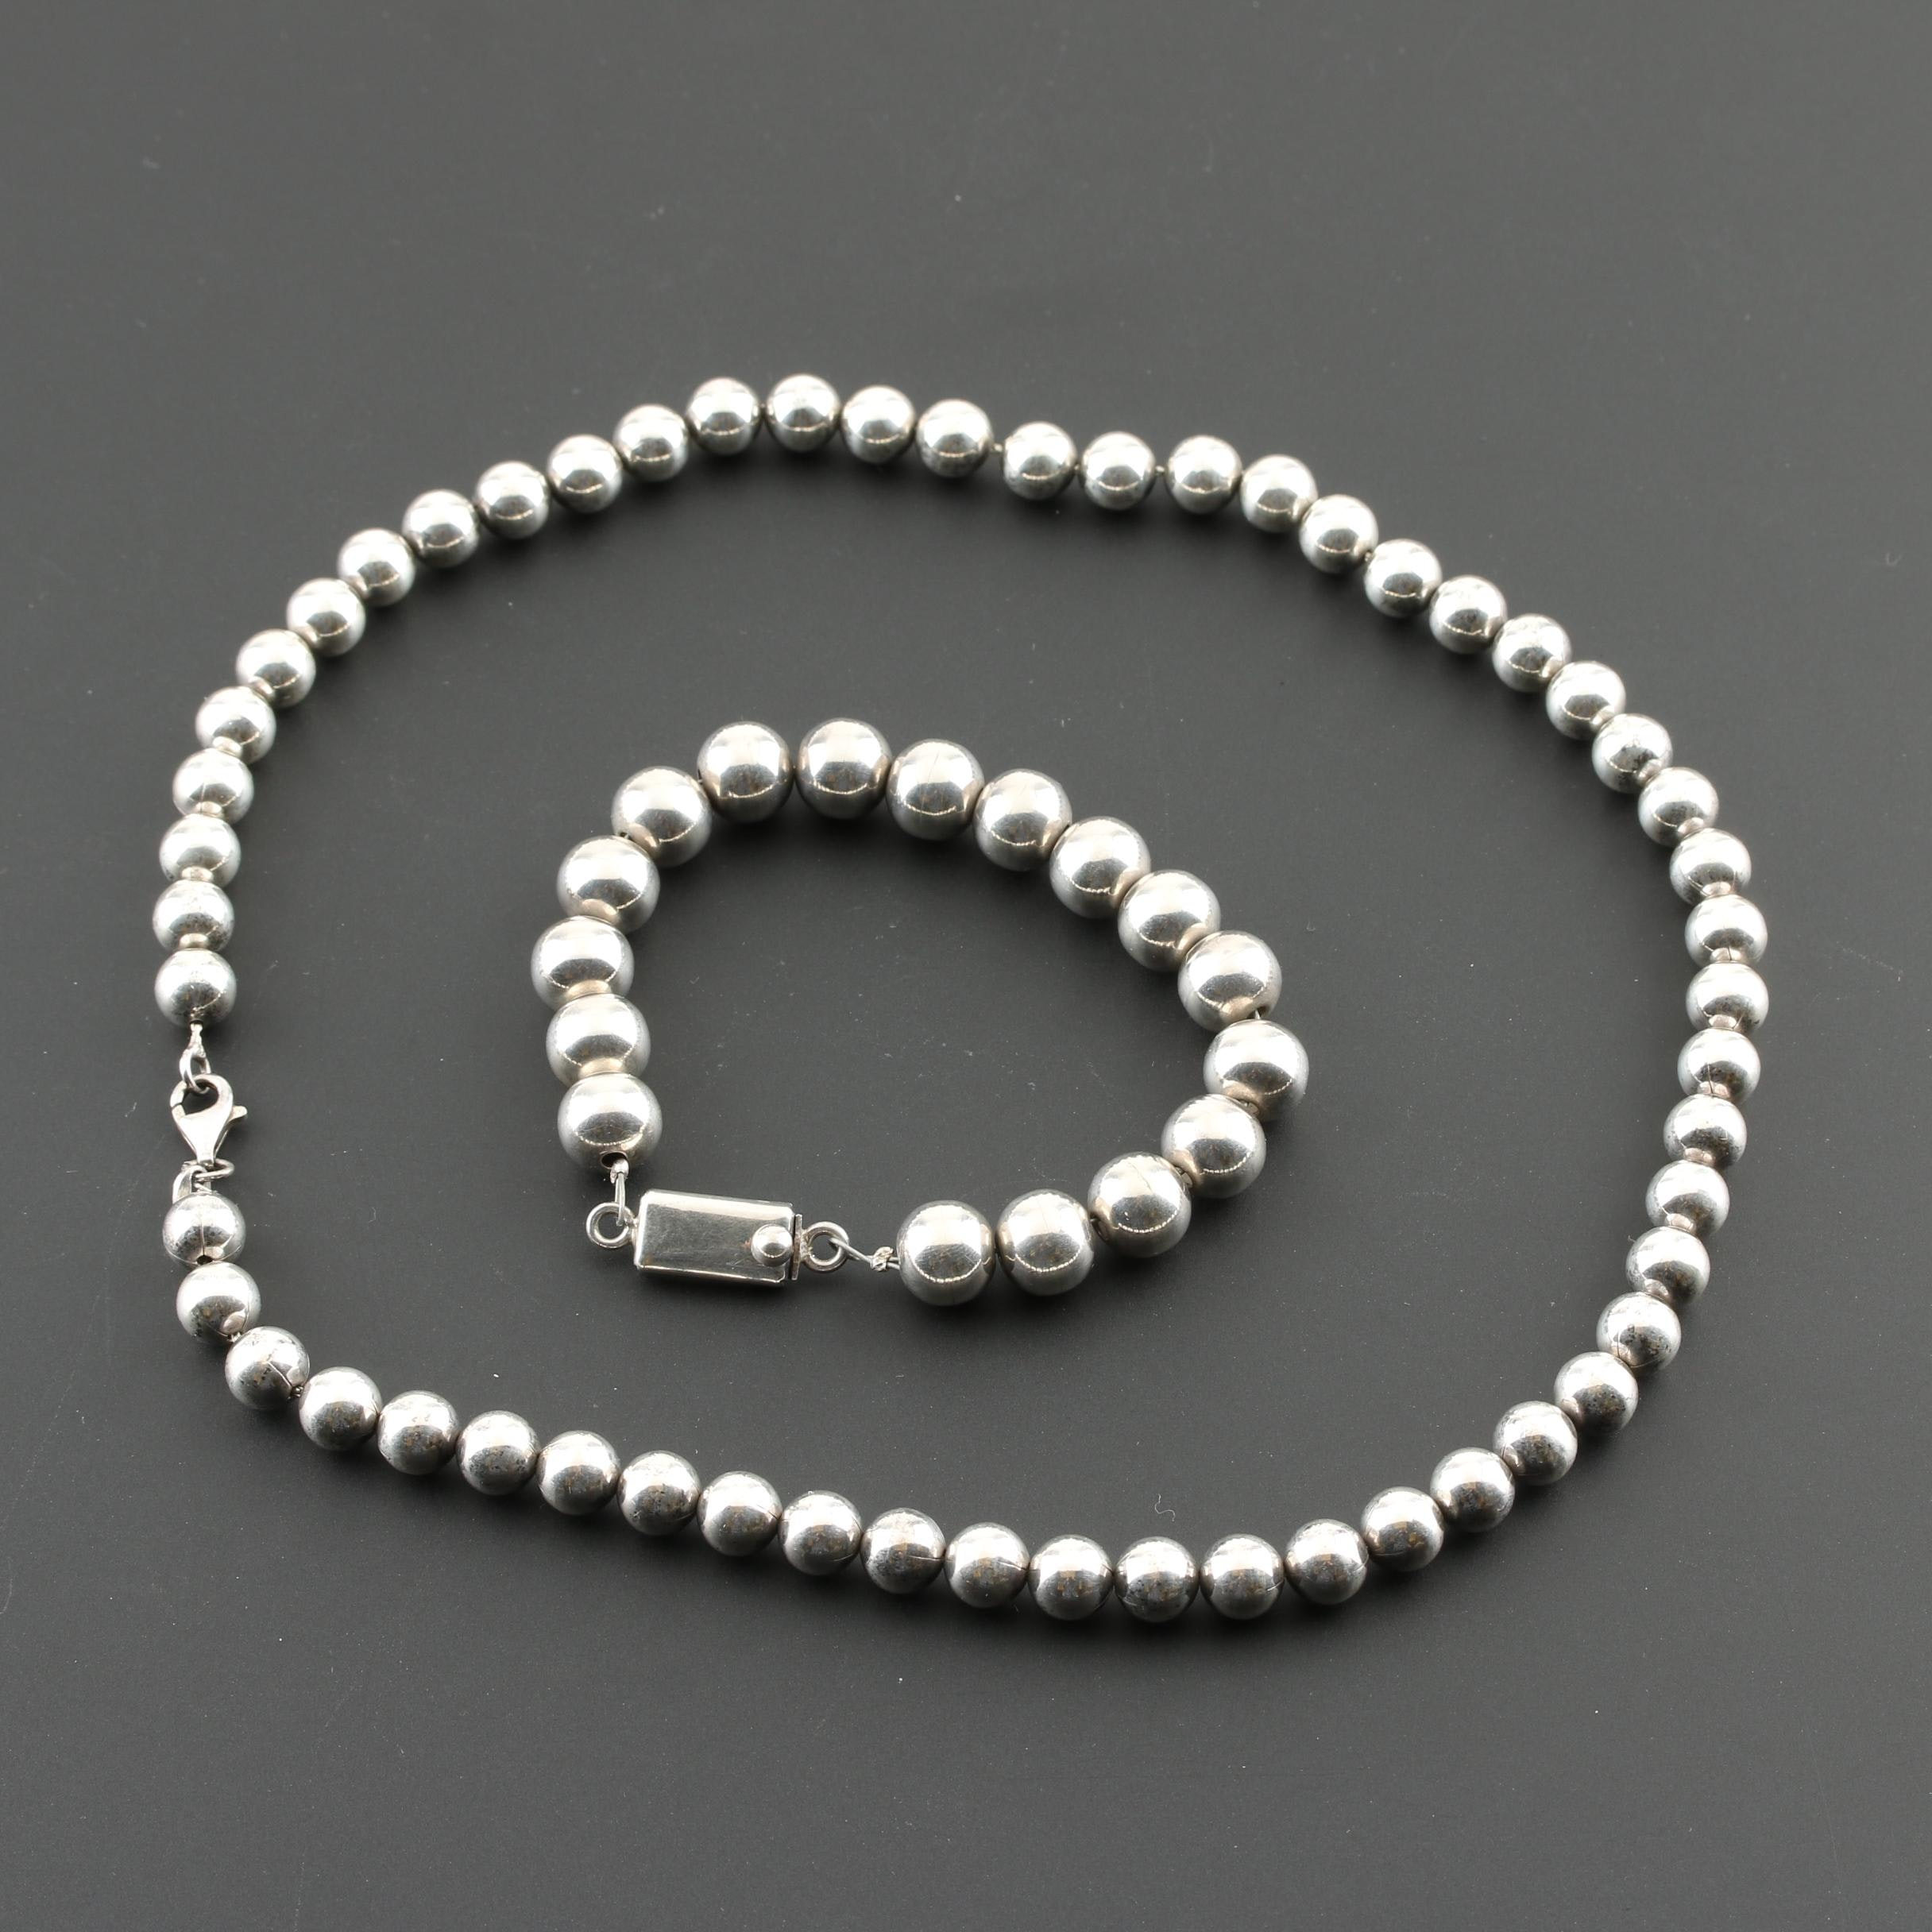 Sterling Silver Beaded Necklace and Bracelet